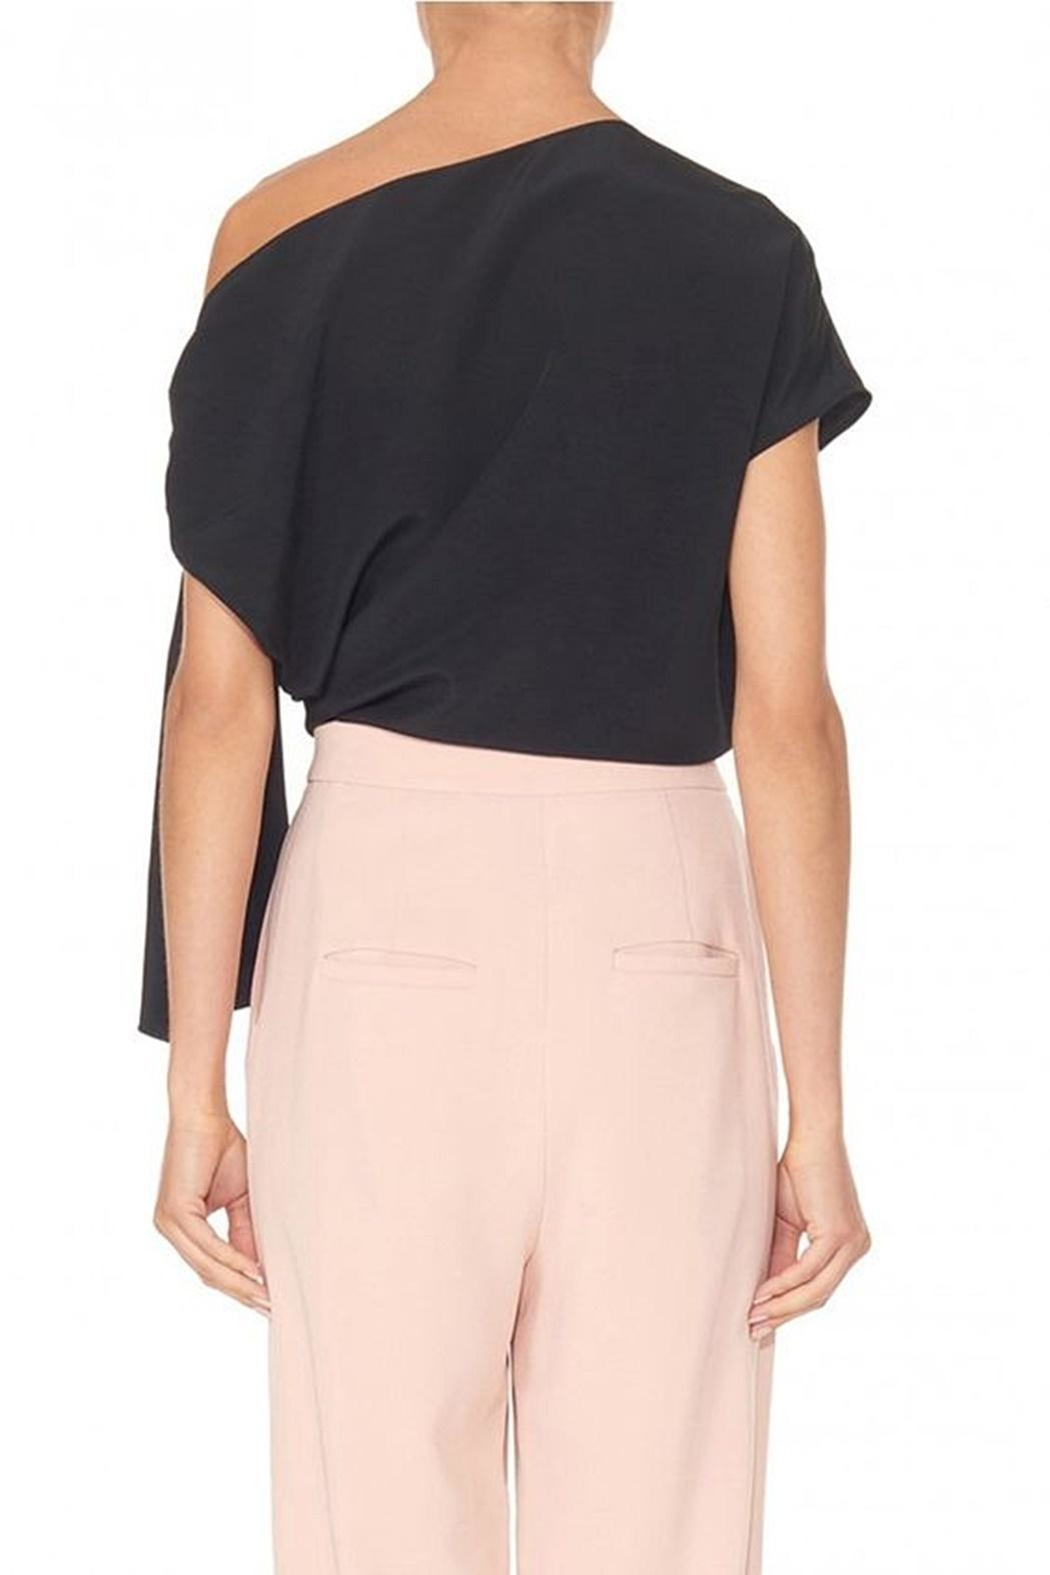 Tibi Silk Asymmetrical Top - Back Cropped Image